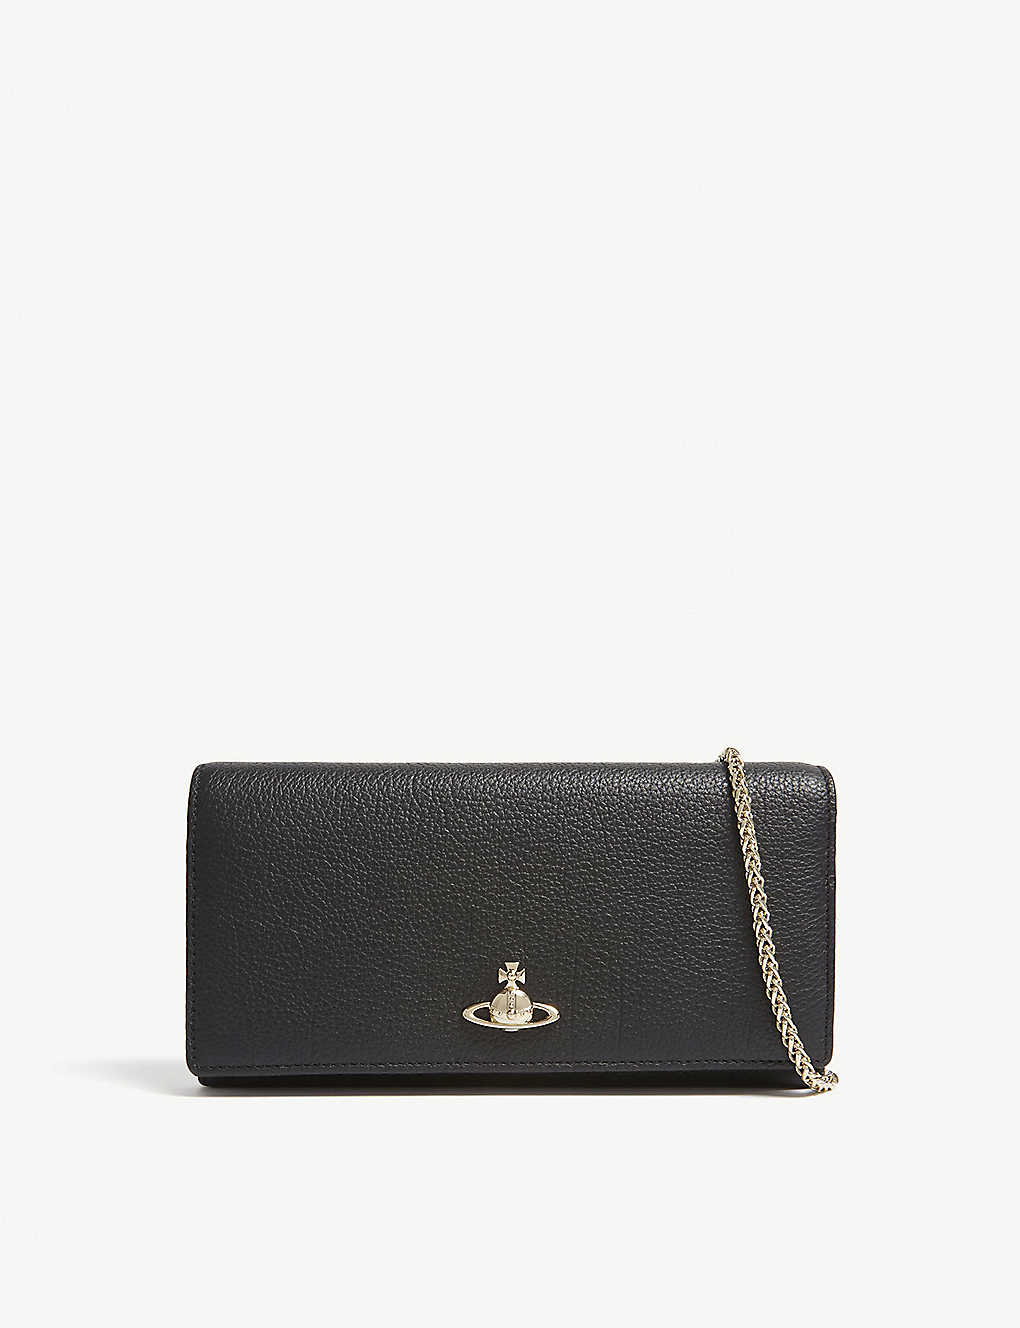 7b80cdc927 VIVIENNE WESTWOOD - Balmoral grained leather wallet-on-chain ...